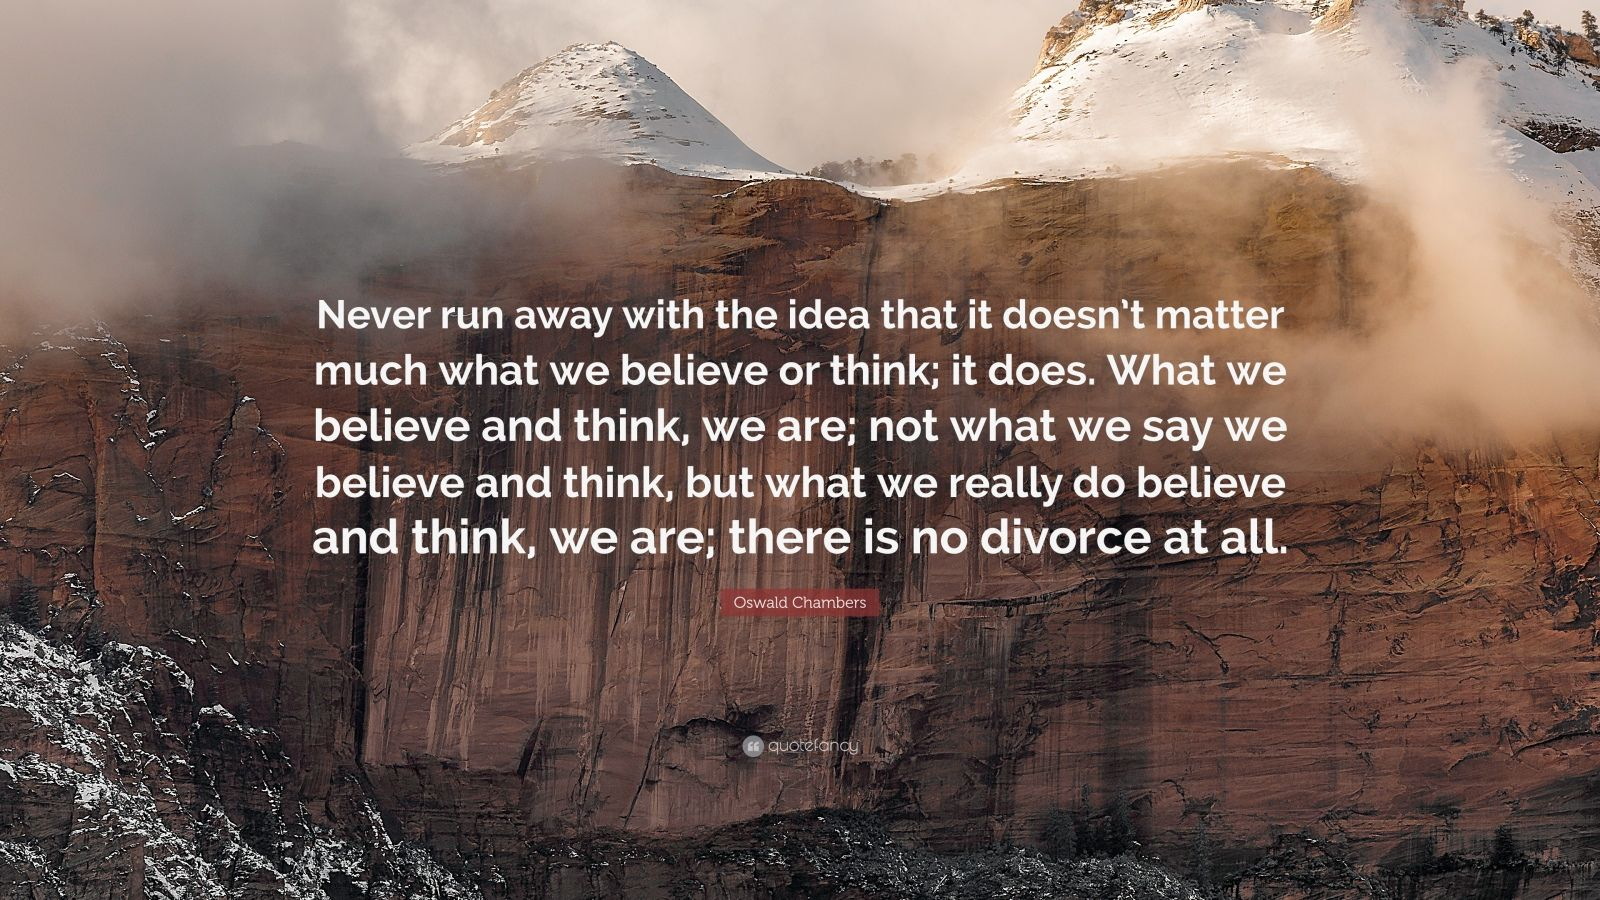 """Oswald Chambers Quote: """"Never run away with the idea that it doesn't matter much what we believe or think; it does. What we believe and think, we are; not what we say we believe and think, but what we really do believe and think, we are; there is no divorce at all."""""""